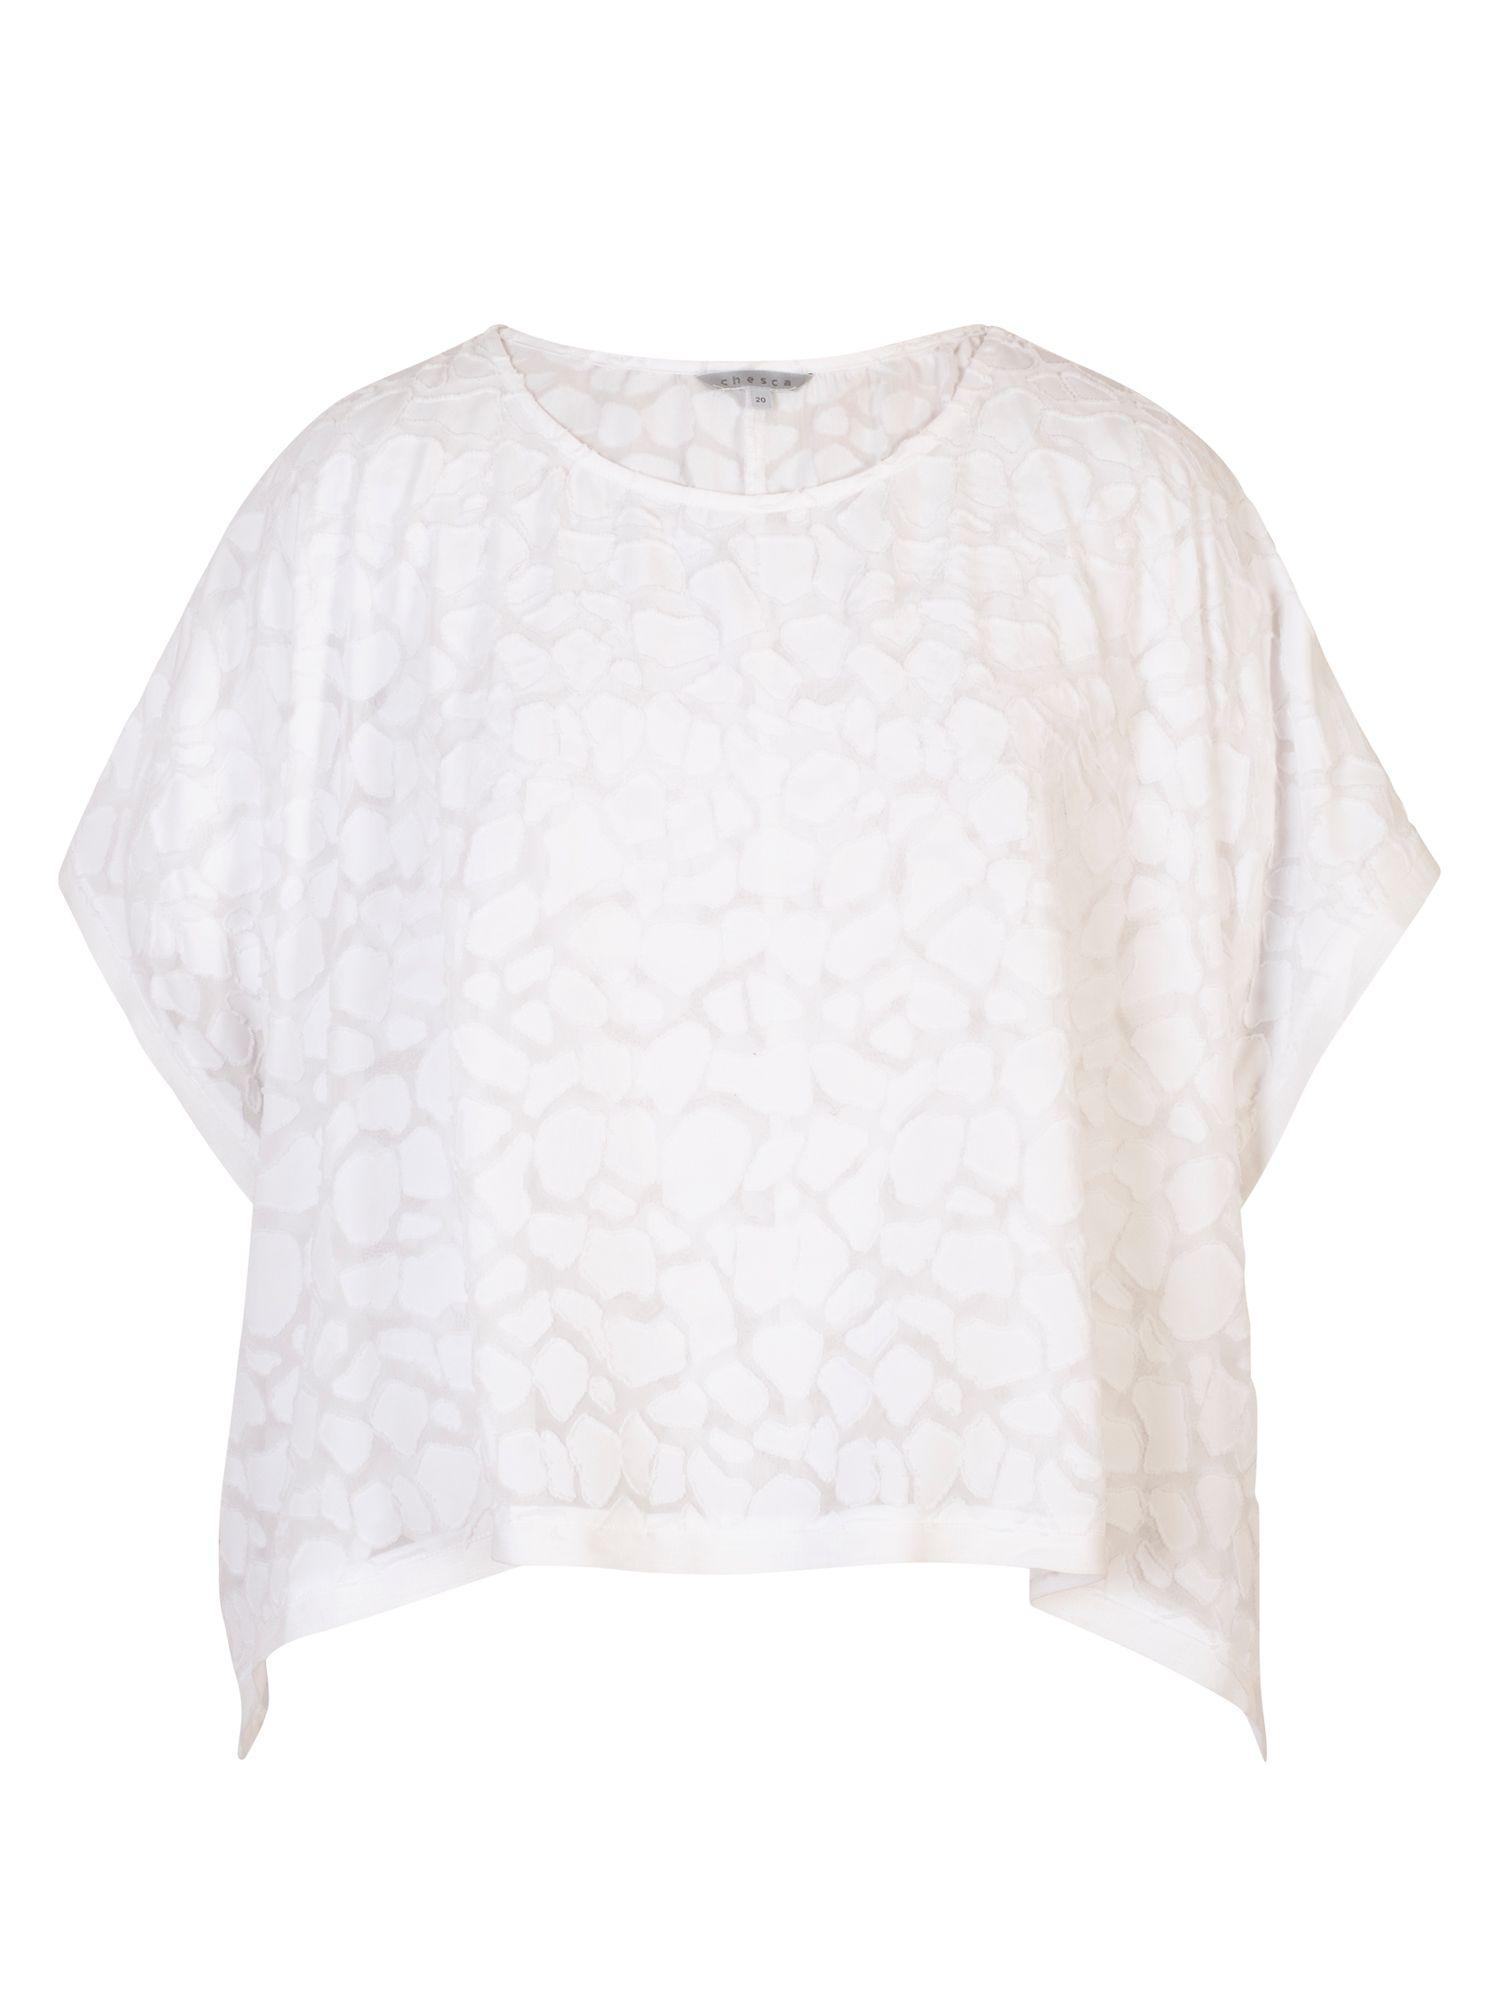 Chesca Pebble Burnout Top, White